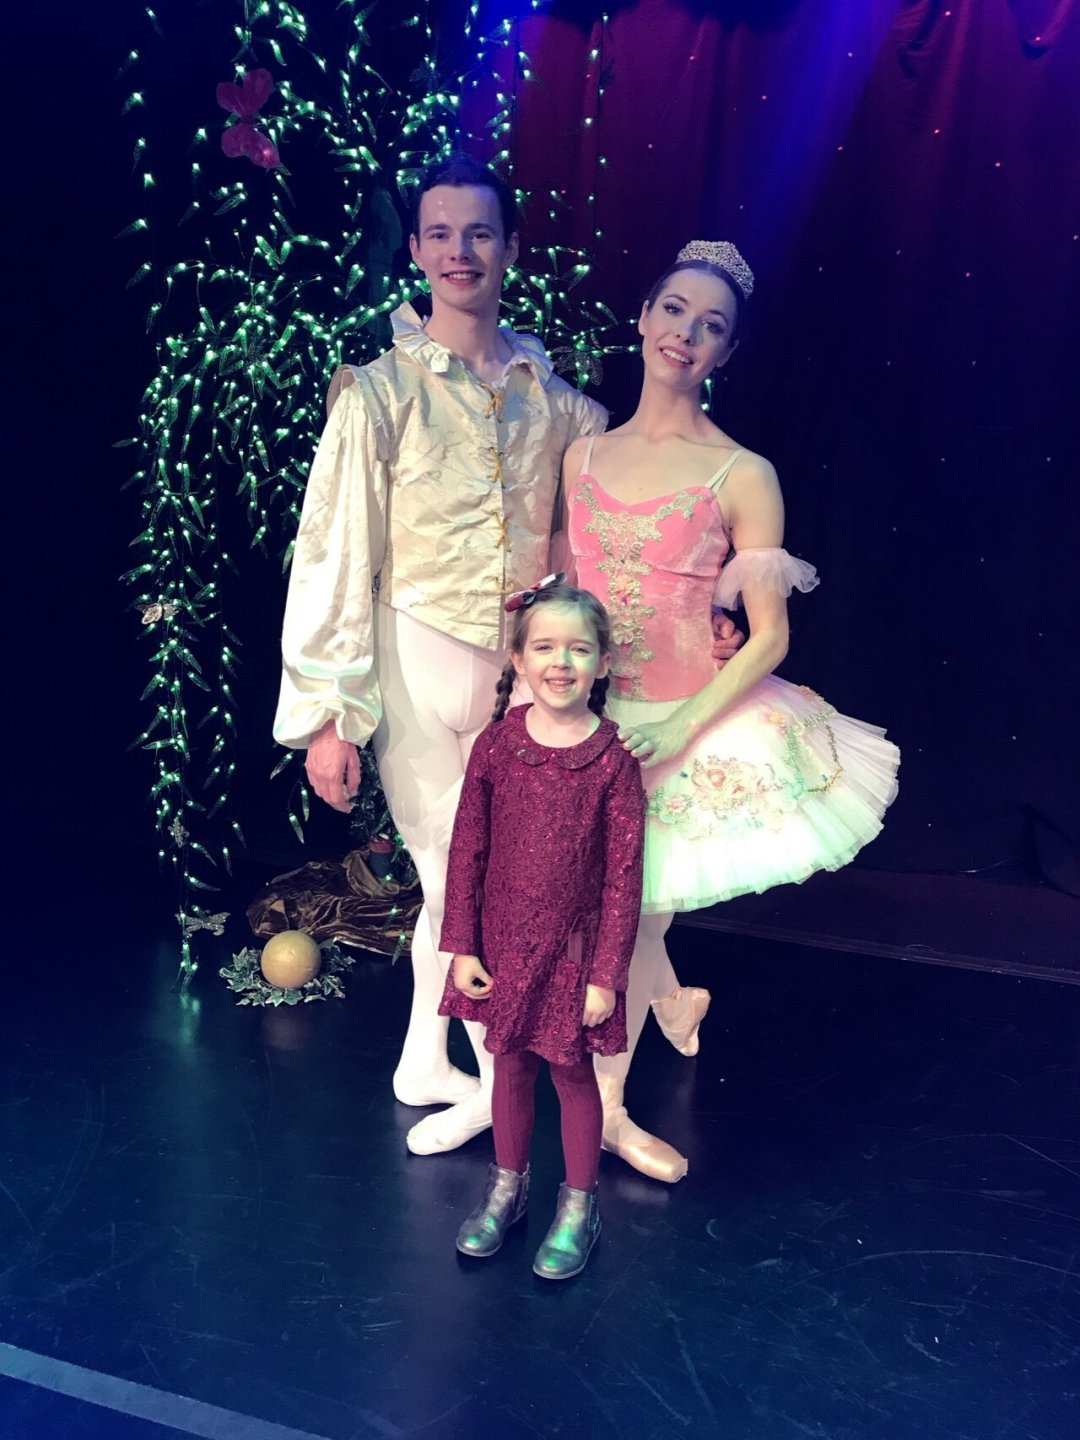 Eden with the princess and the frog on stage at her first ballet